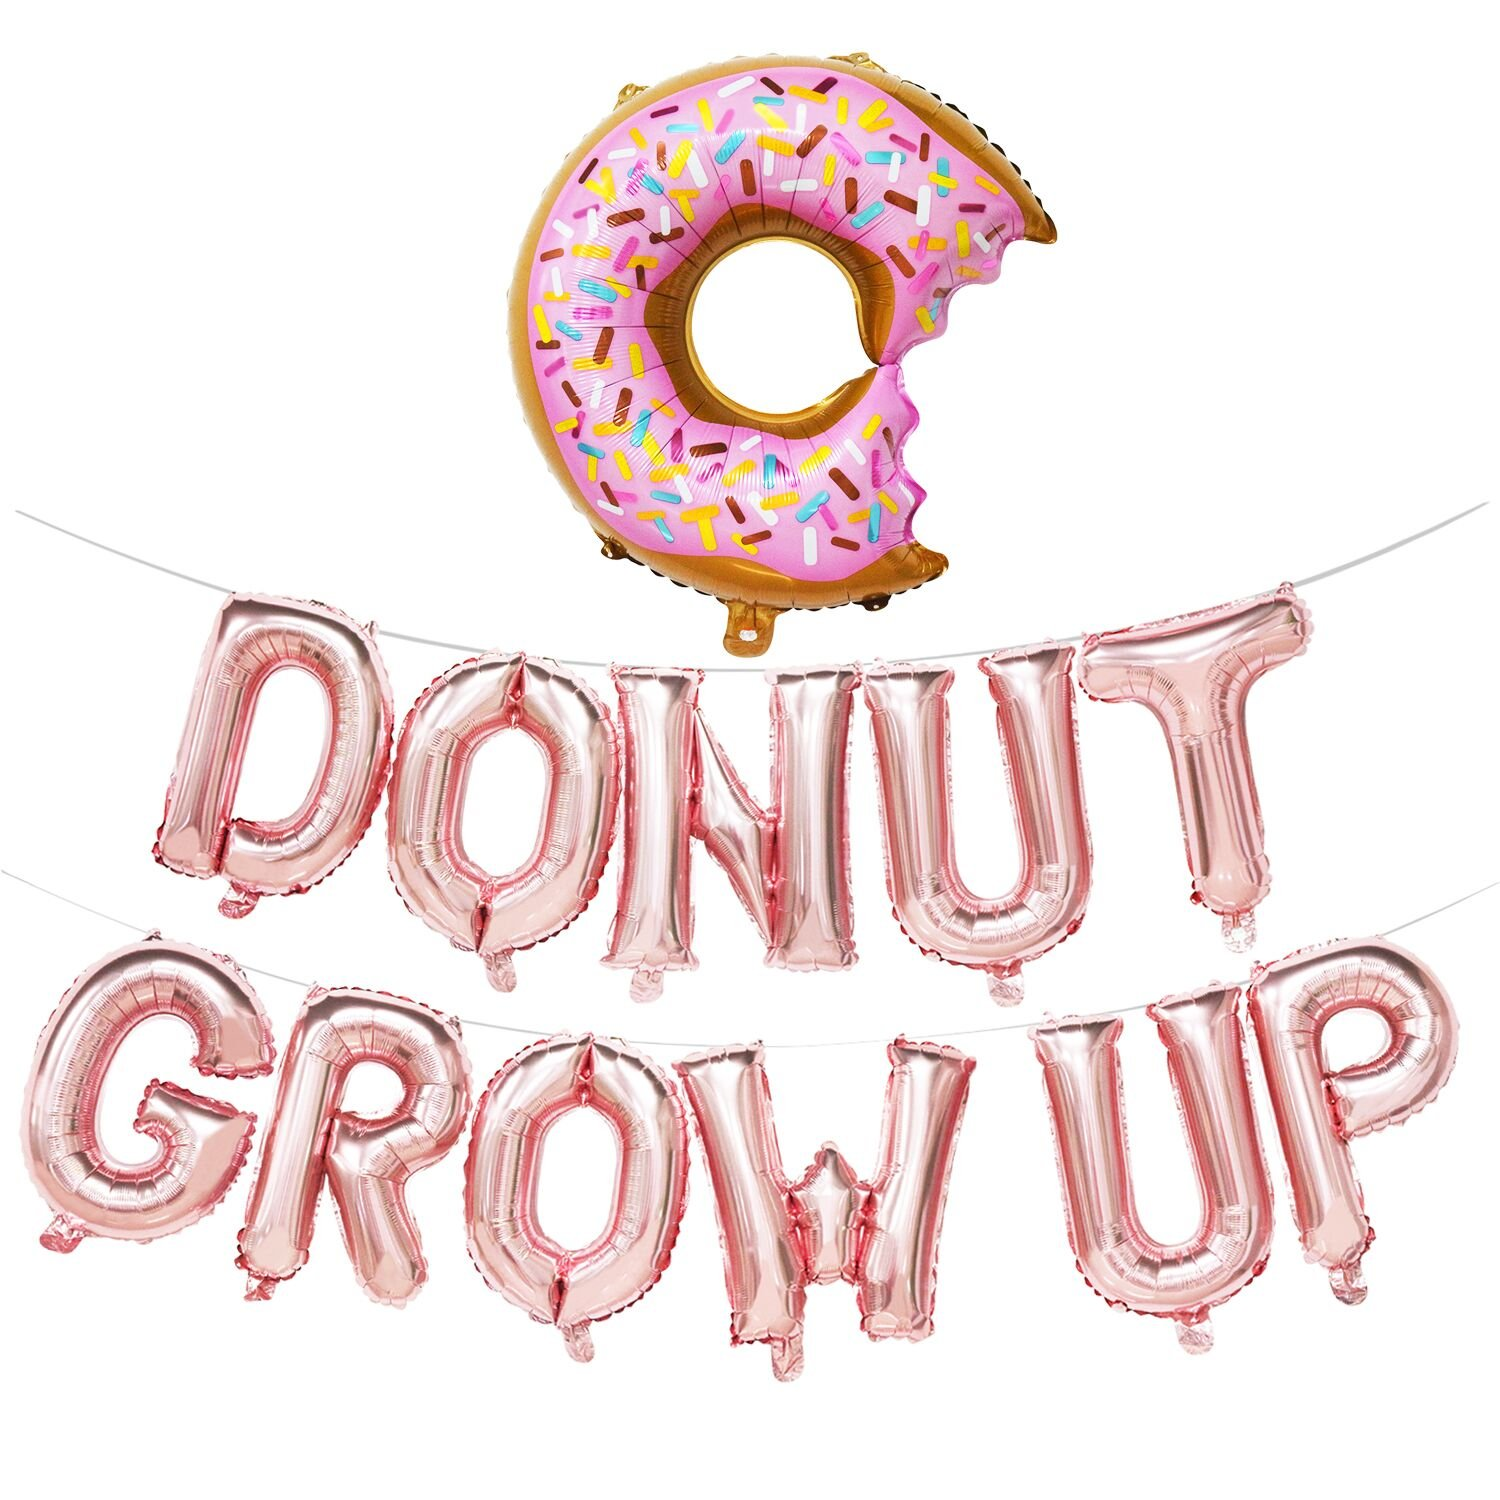 Donut Grow up Balloons | Donut Grow up Birthday Banner | Donut Birthday Party Decorations | Donut Theme Party Supplies | Donut Shape Balloons (Rose Gold) by Mosoan